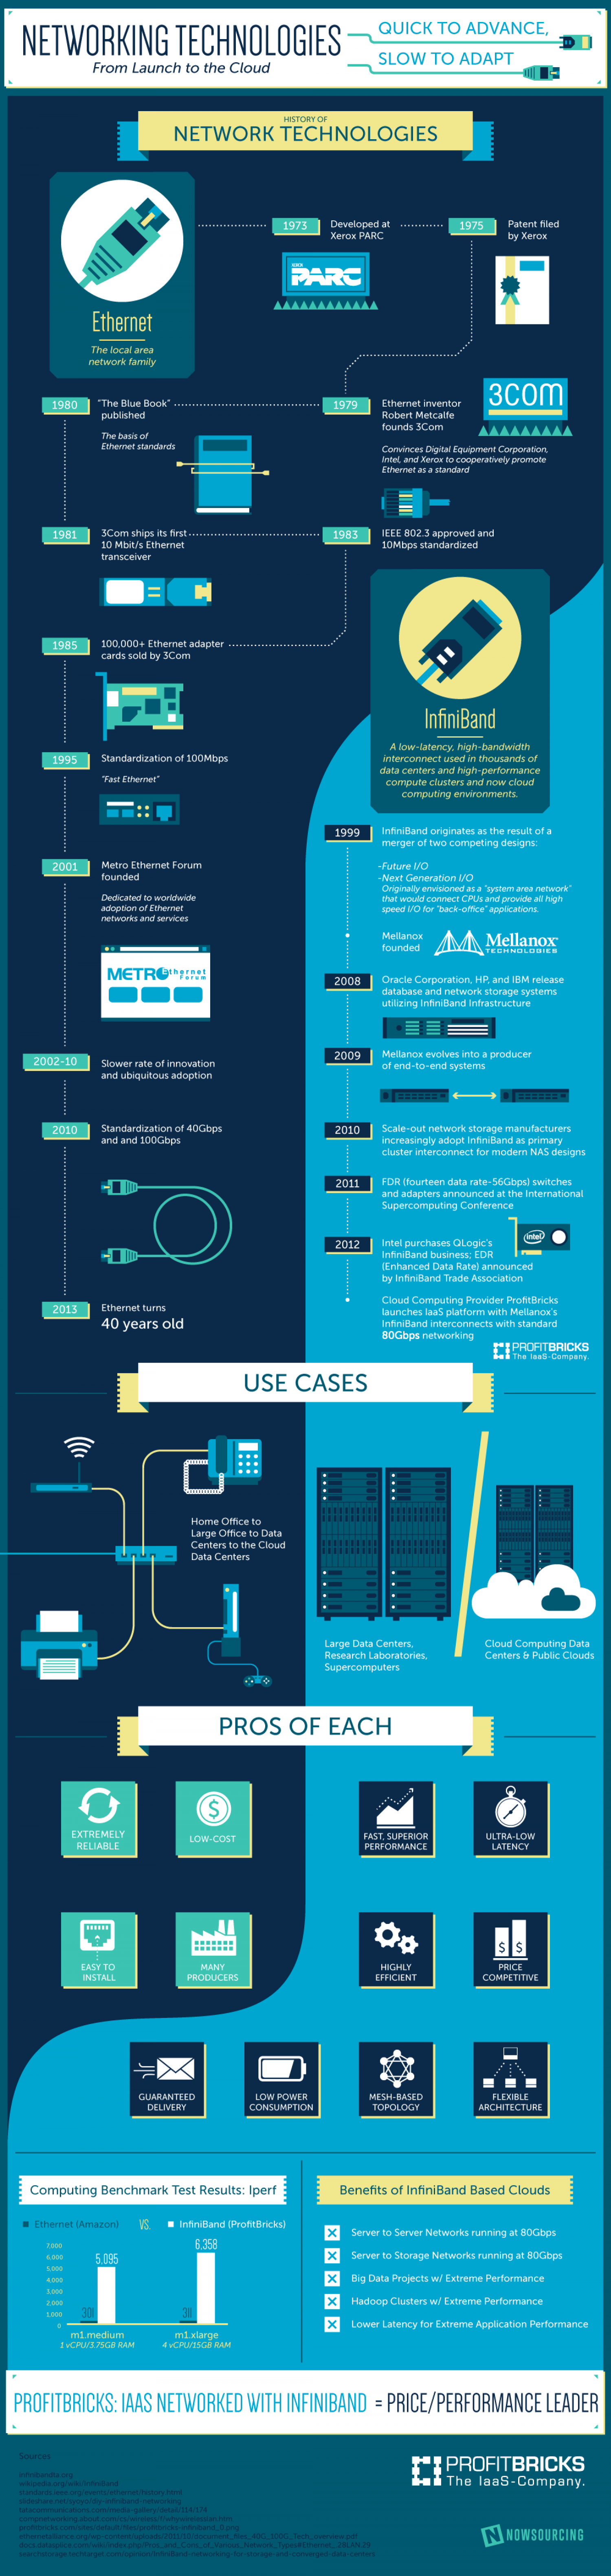 Networking Technologies: From Launch to the Cloud Infographic